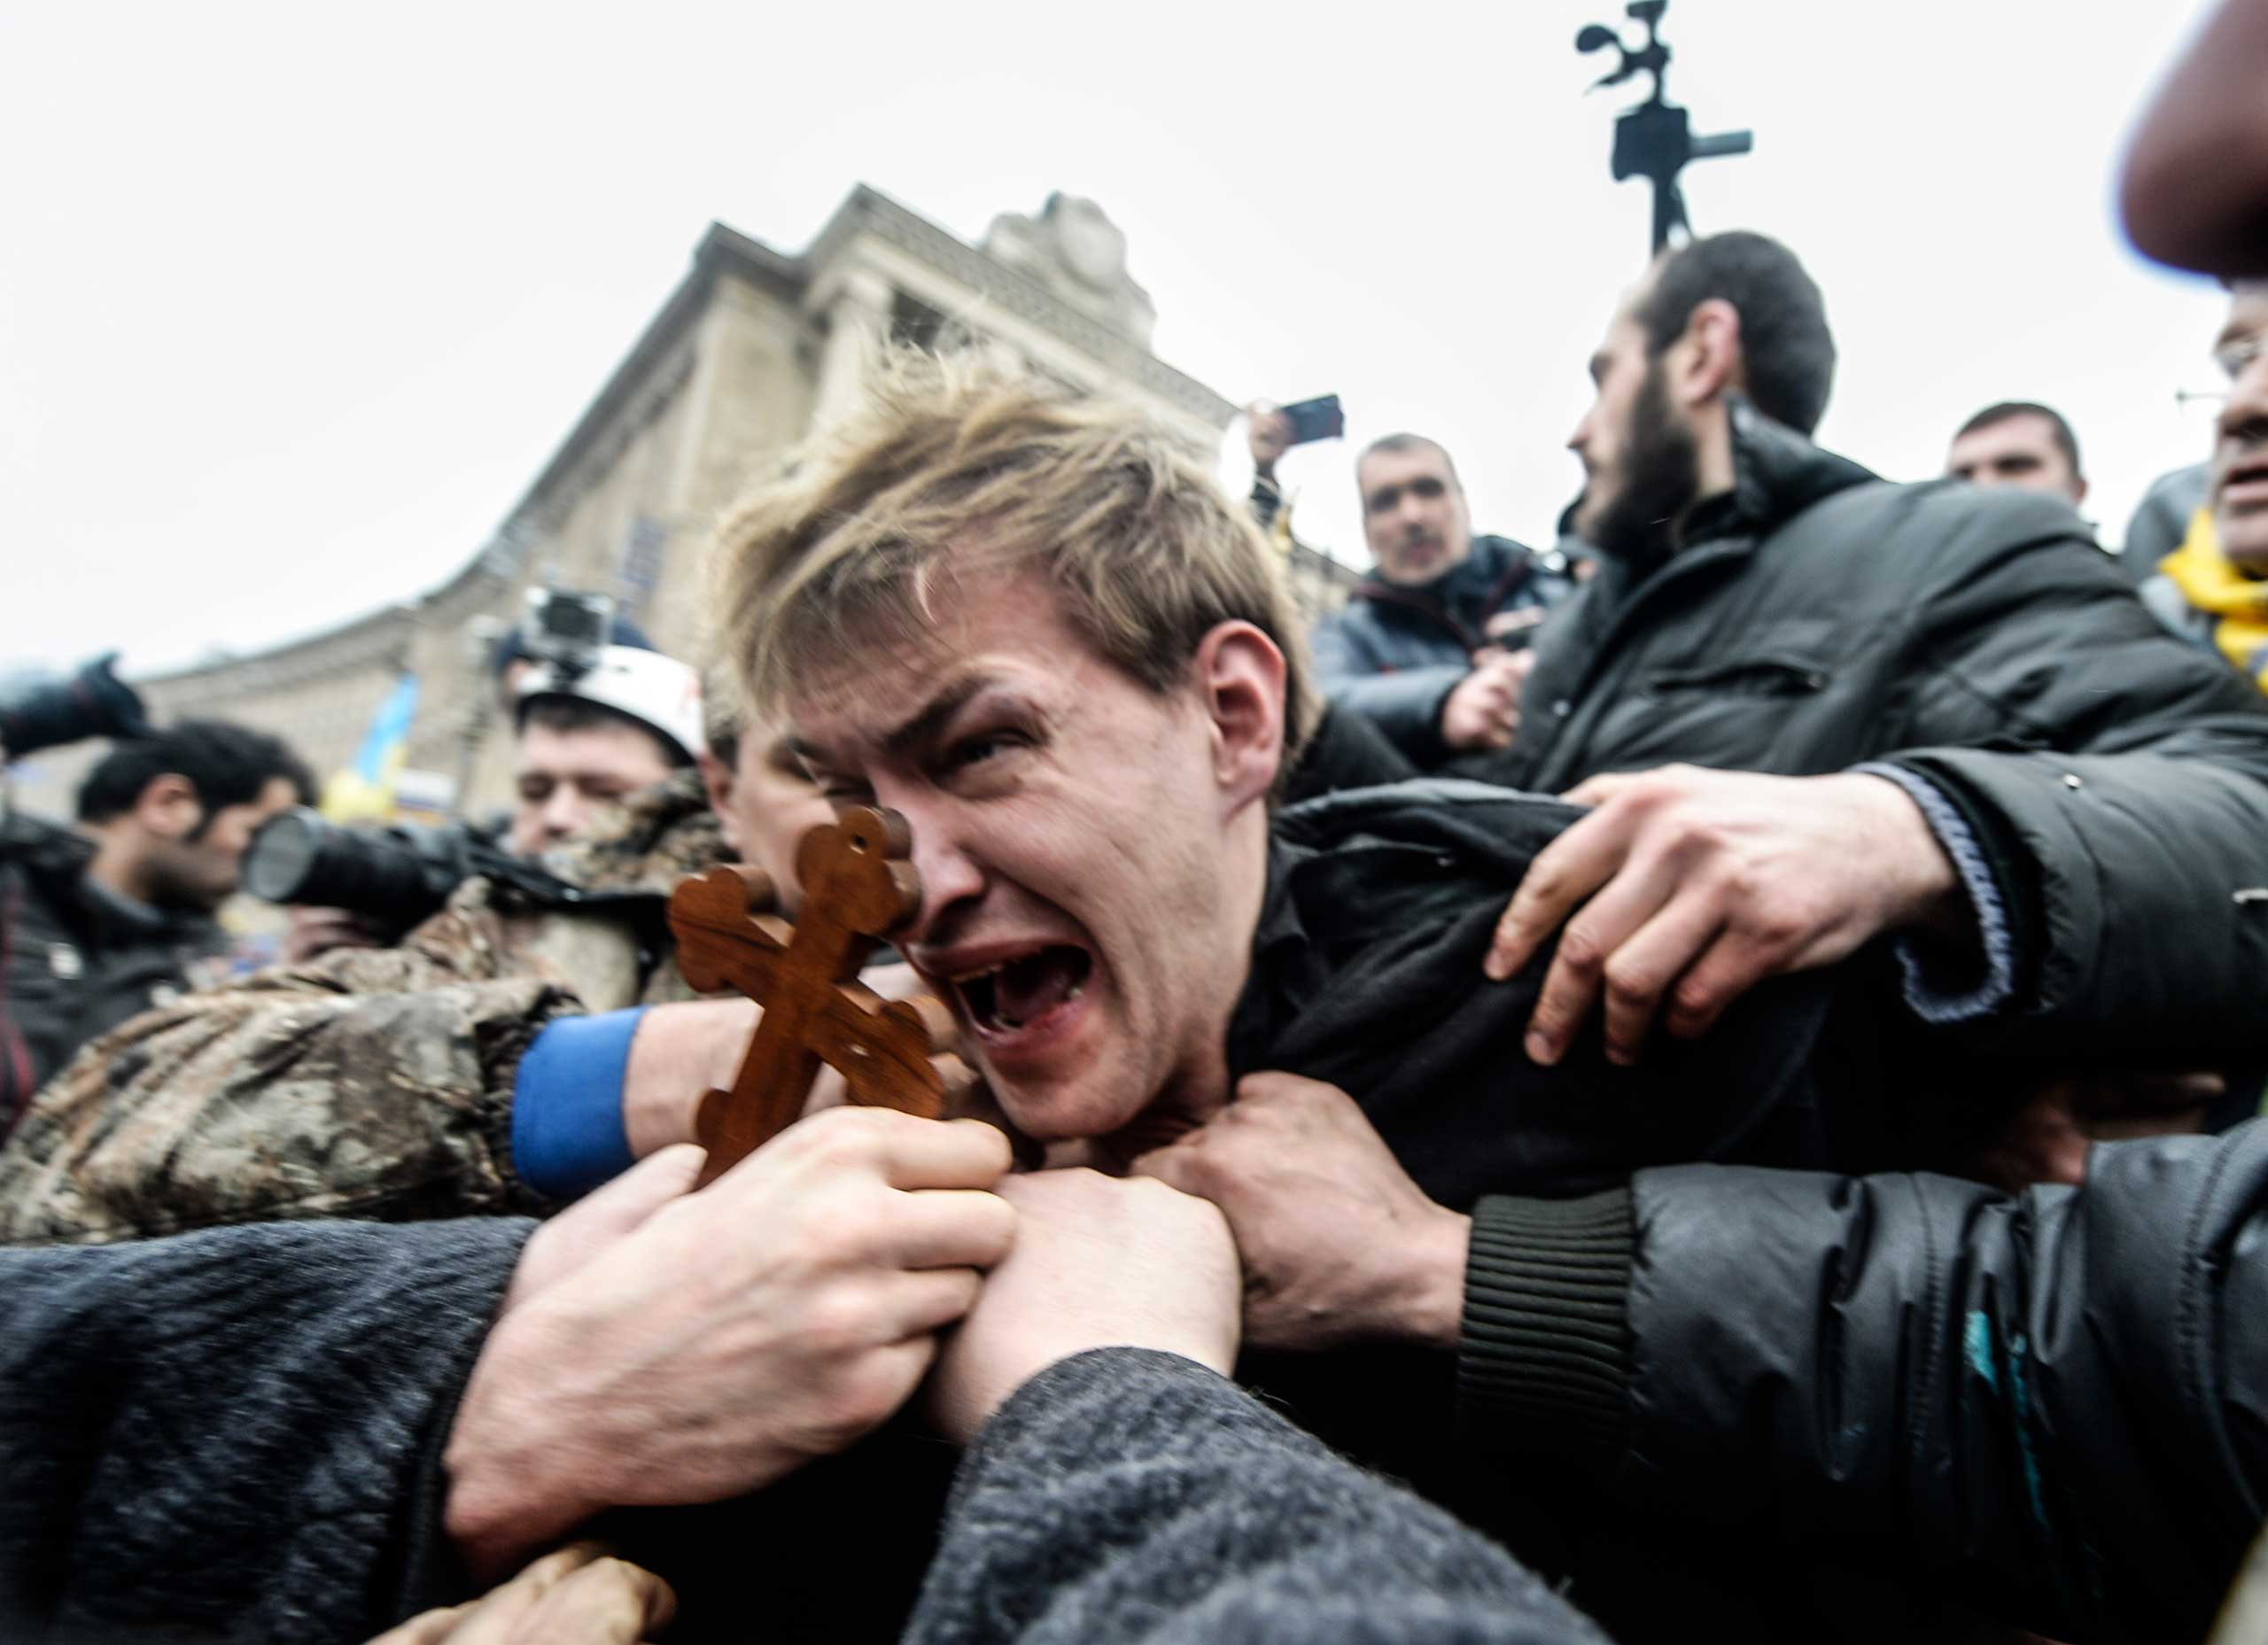 An alleged sniper (C) and member of the pro-government forces is beaten by anti-government protestors in Kiev, Ukraine, on Feb. 22, 2014.